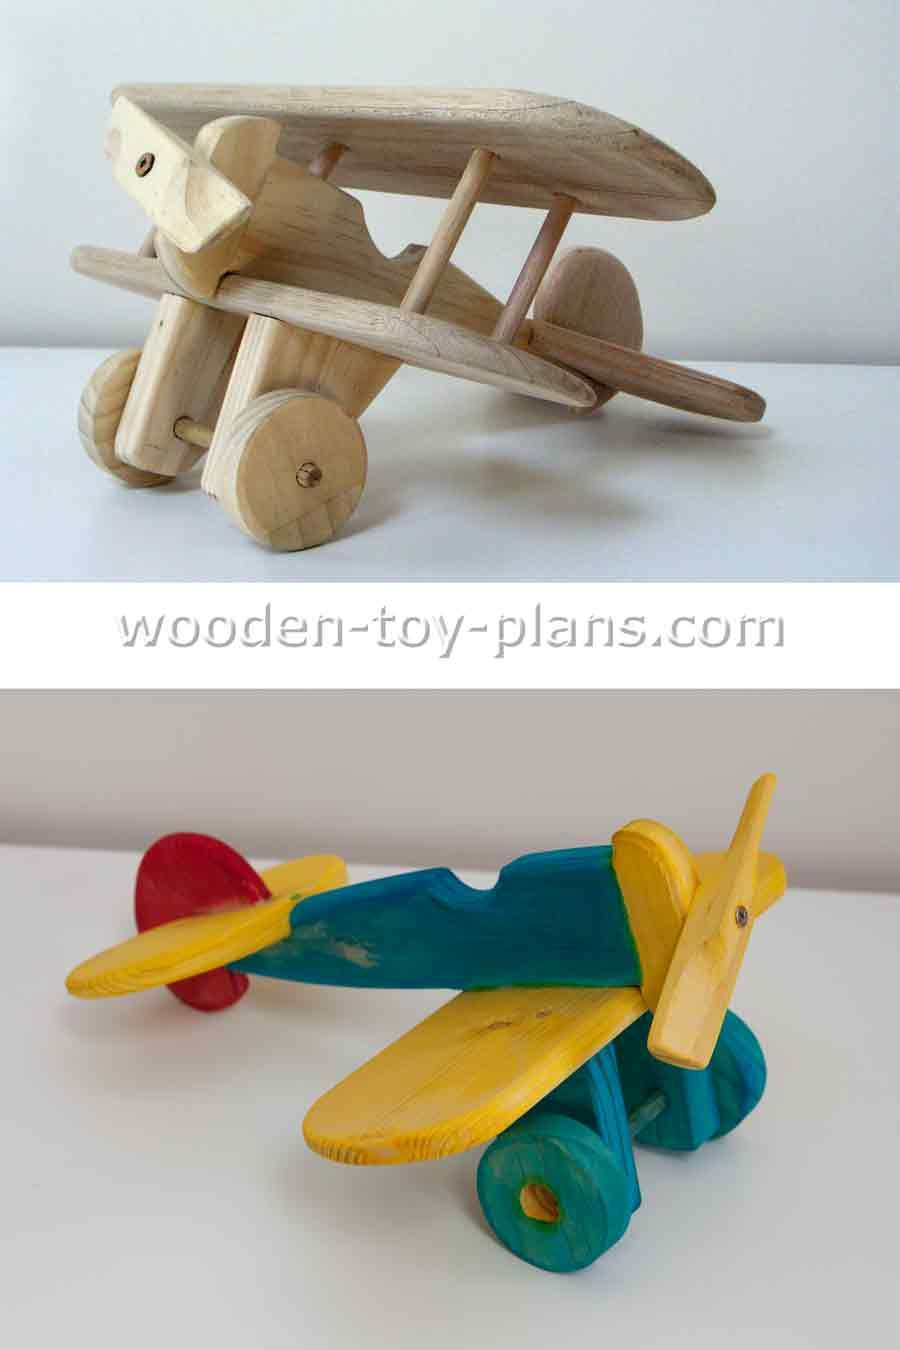 download free plans to make this wooden toy biplane. visit